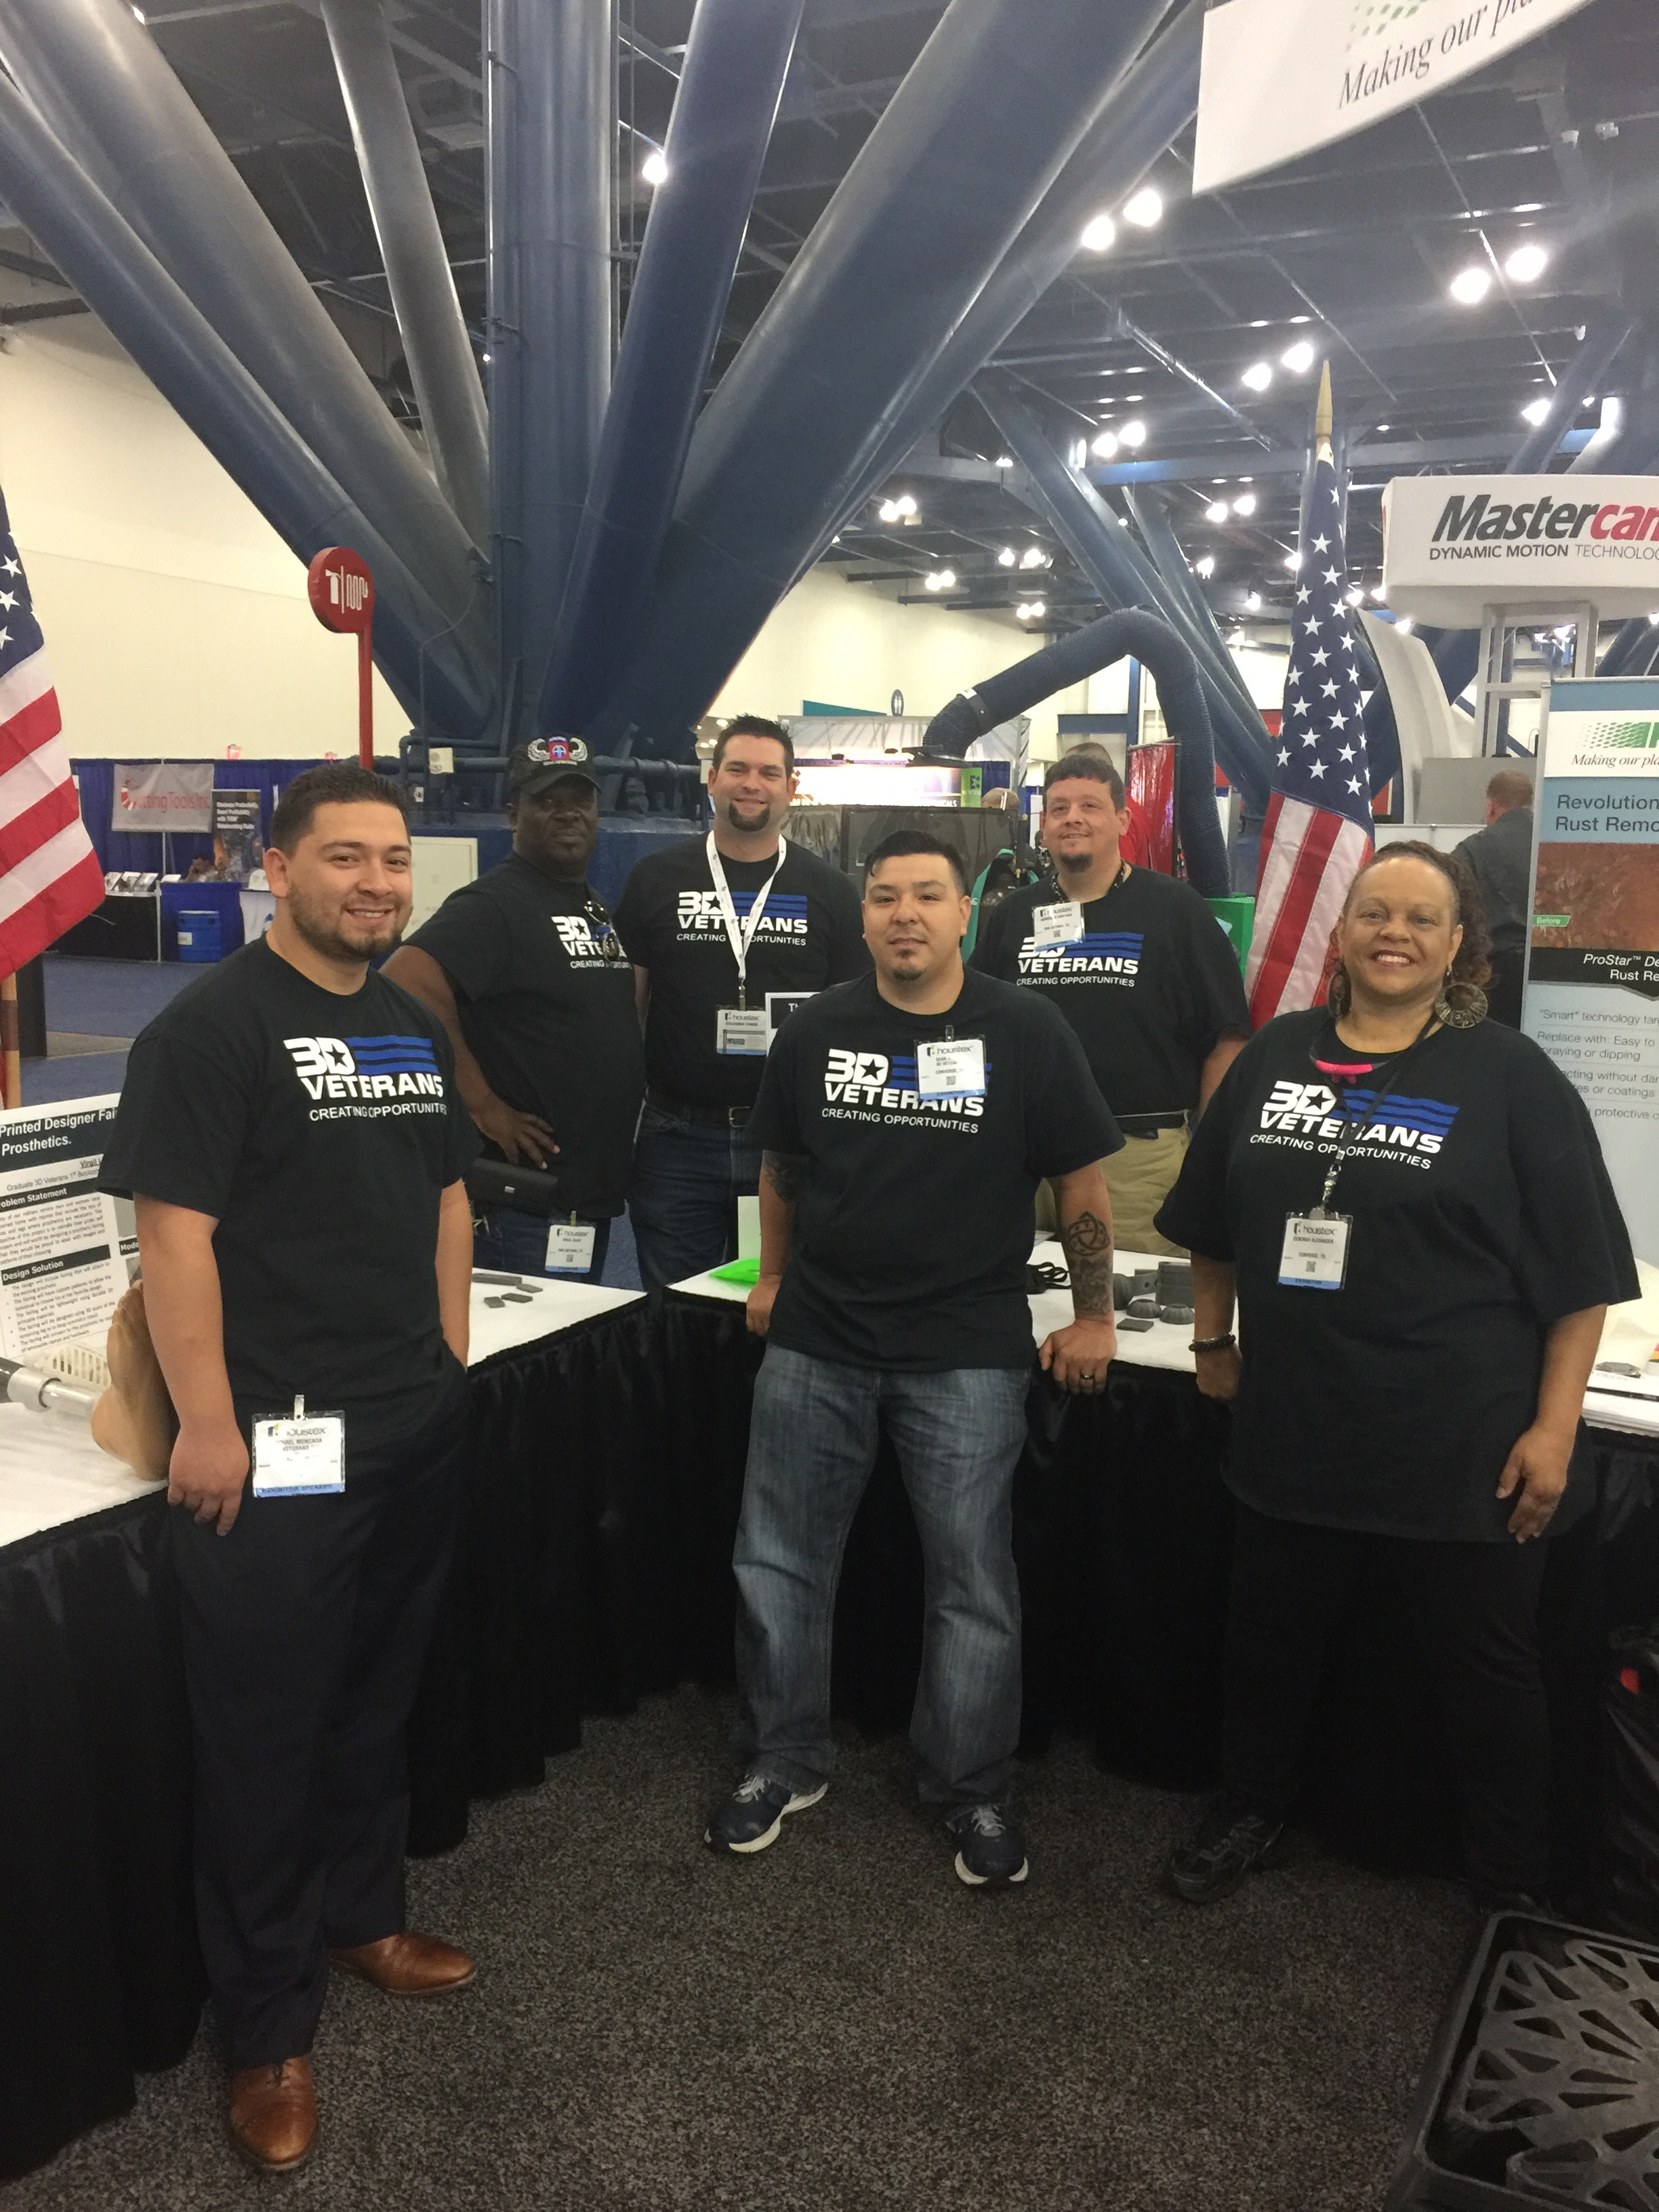 WELCOME! - 3D Veterans provides veterans with emerging technology  training programs for great career opportunities